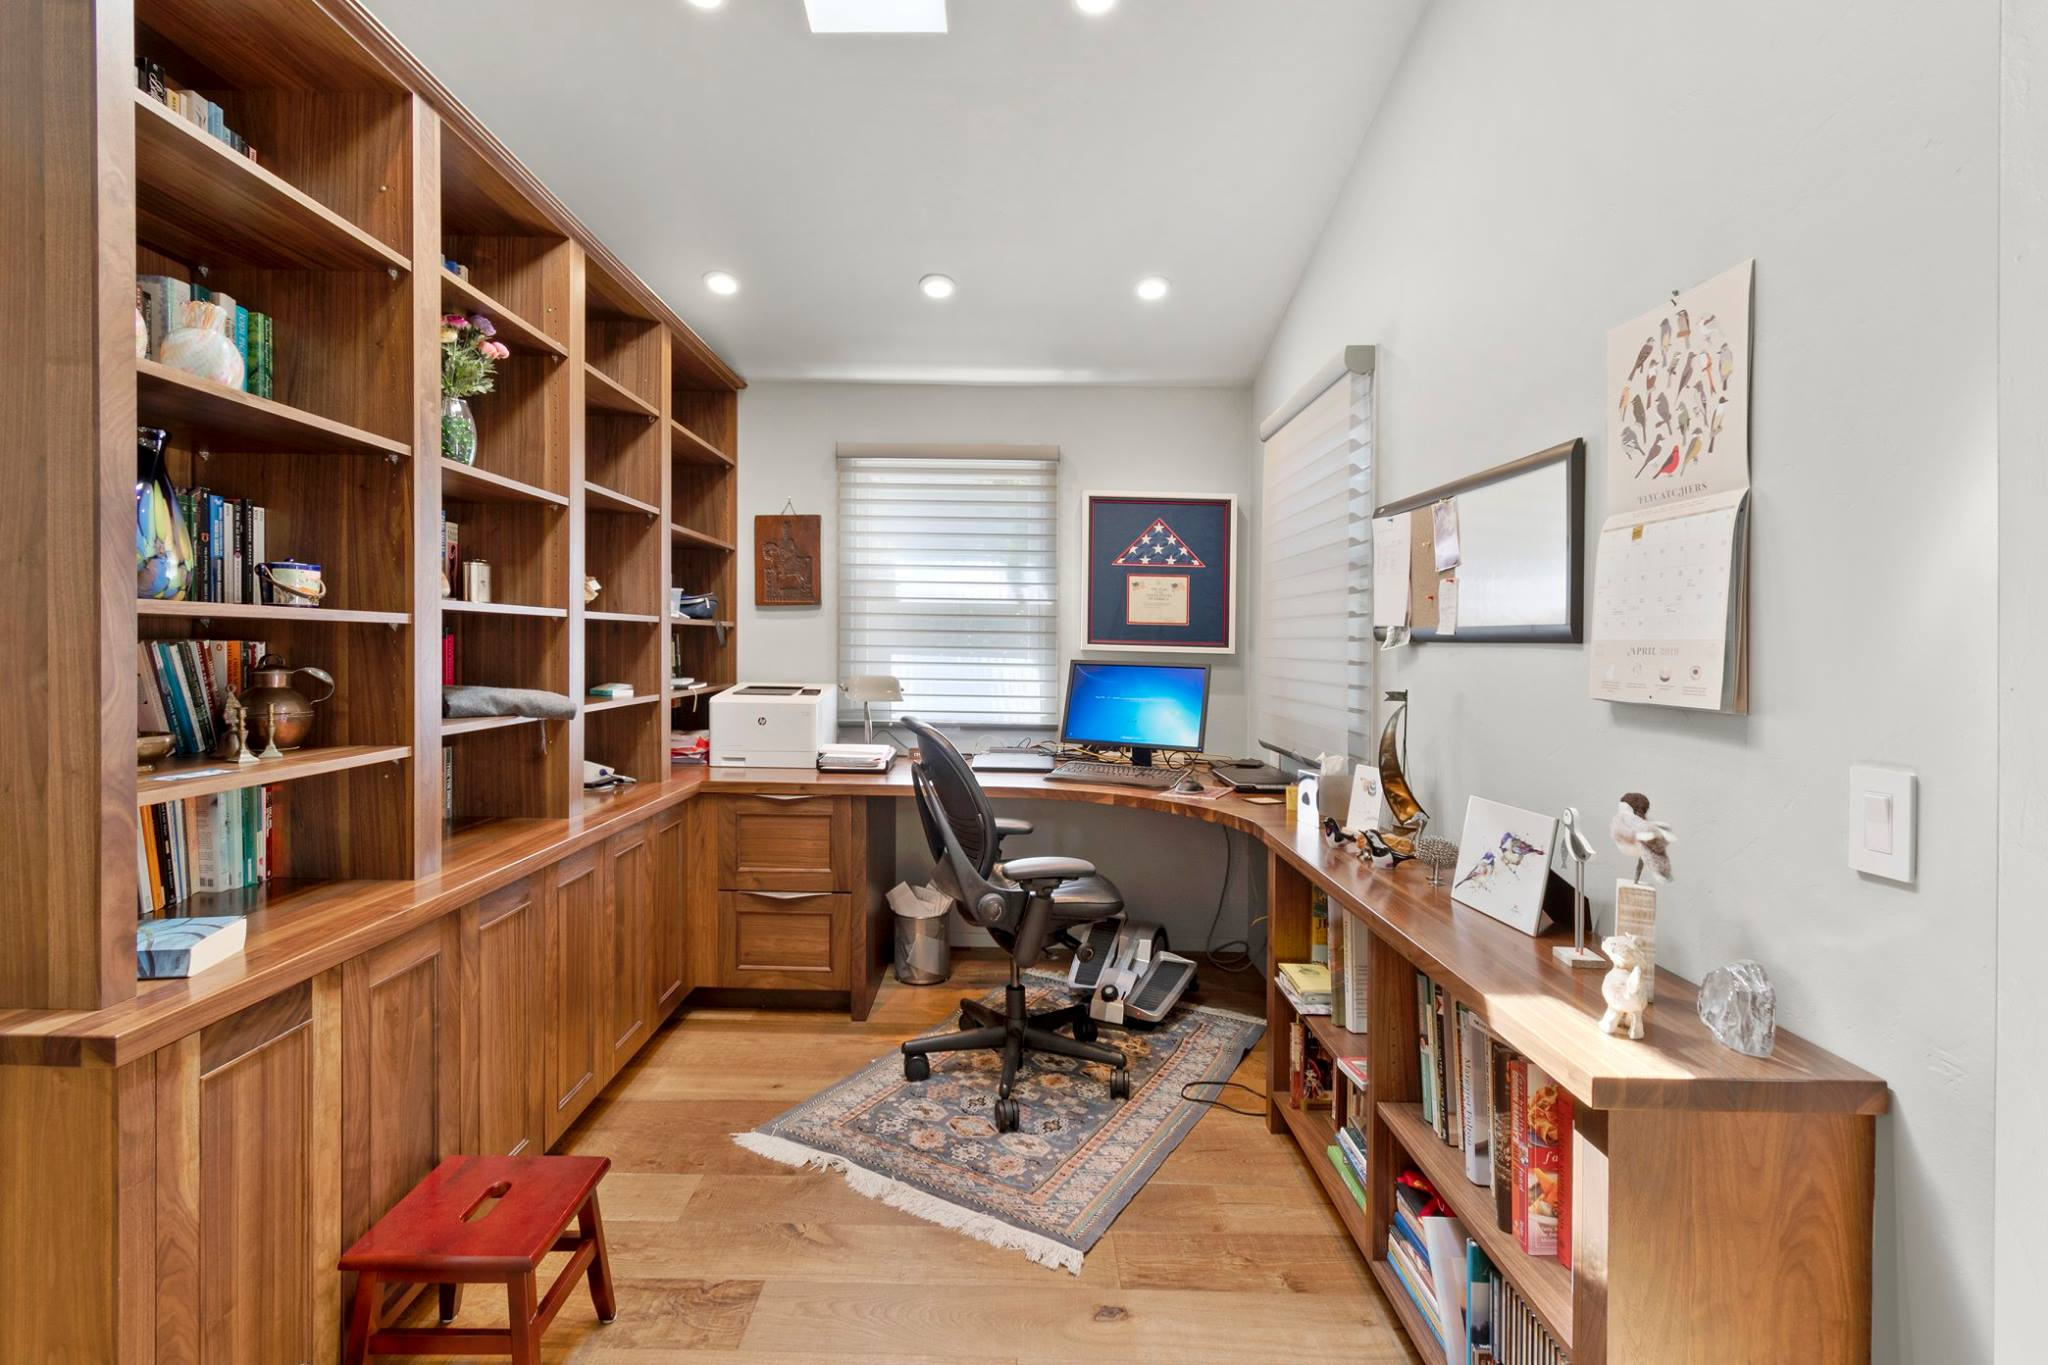 Walnut Desk Top for a Custom Built-In Home Office Desk with Walnut Cabinetry